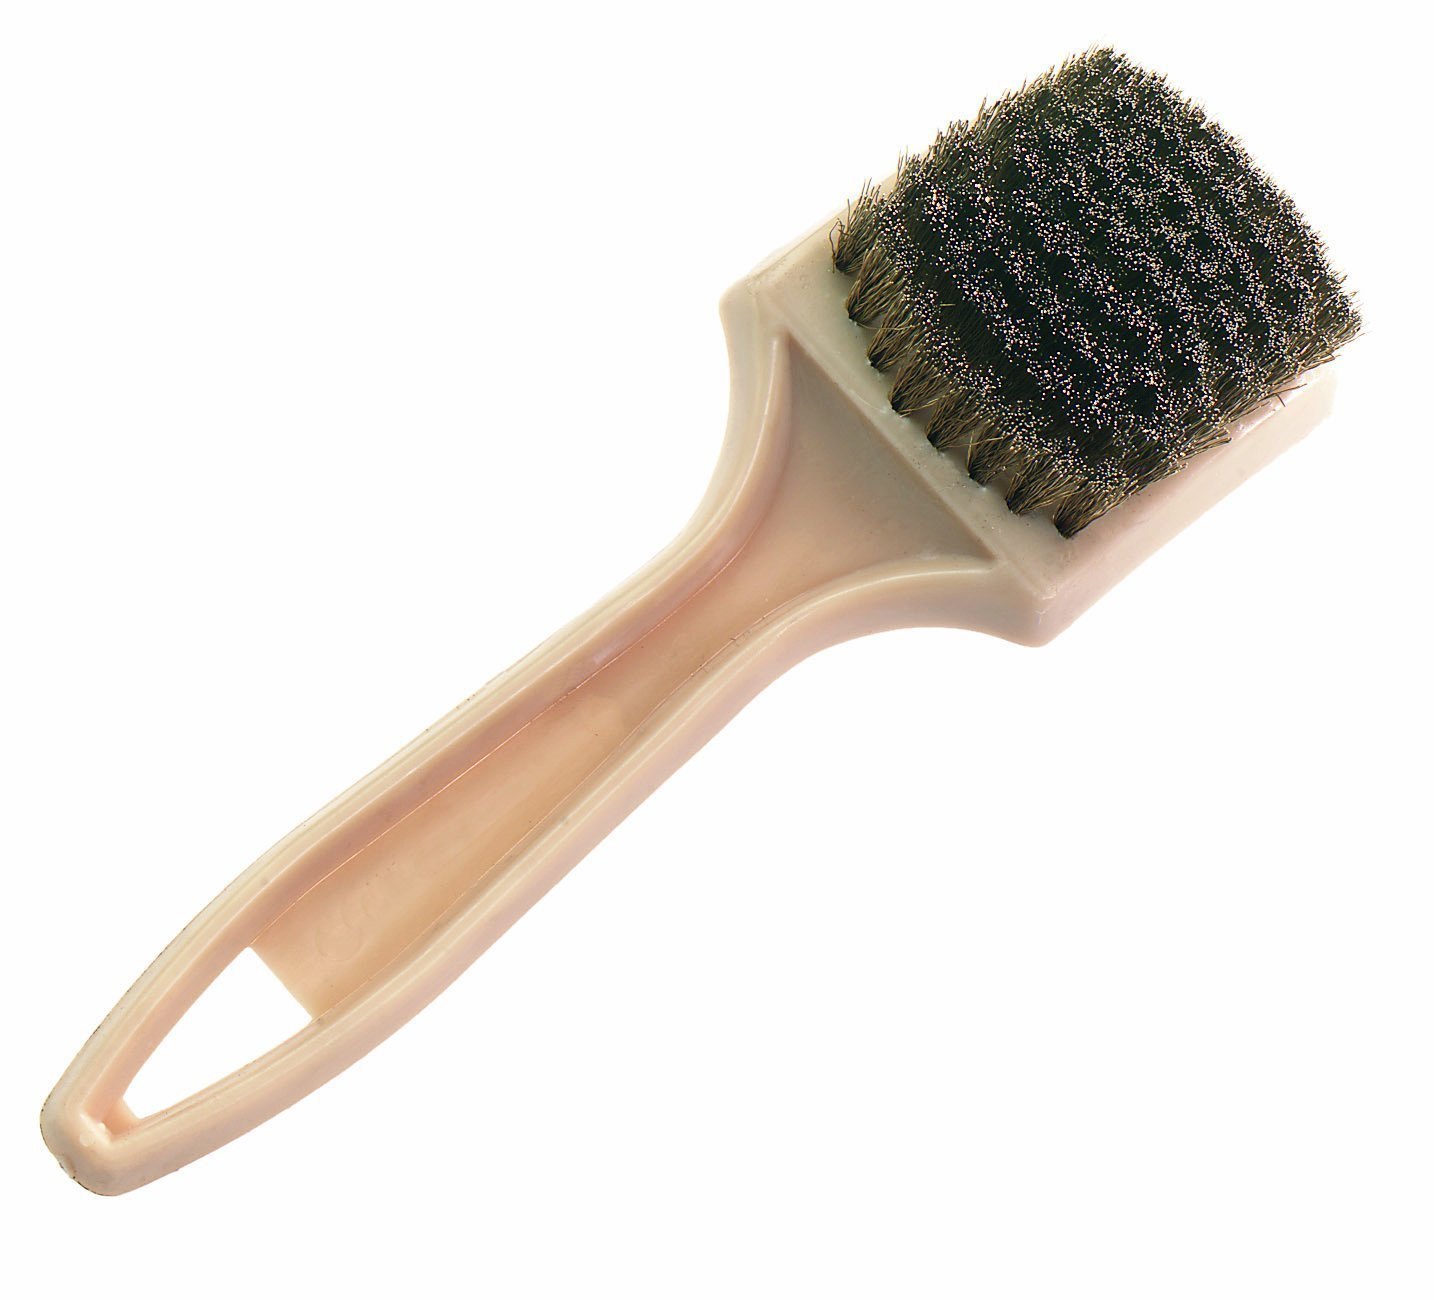 Osborn International 71150SP Brass Tile Cleaning Brush with Plastic Handle, 2-3/4' Brush Area Length [並行輸入品] B01MDUPPMZ